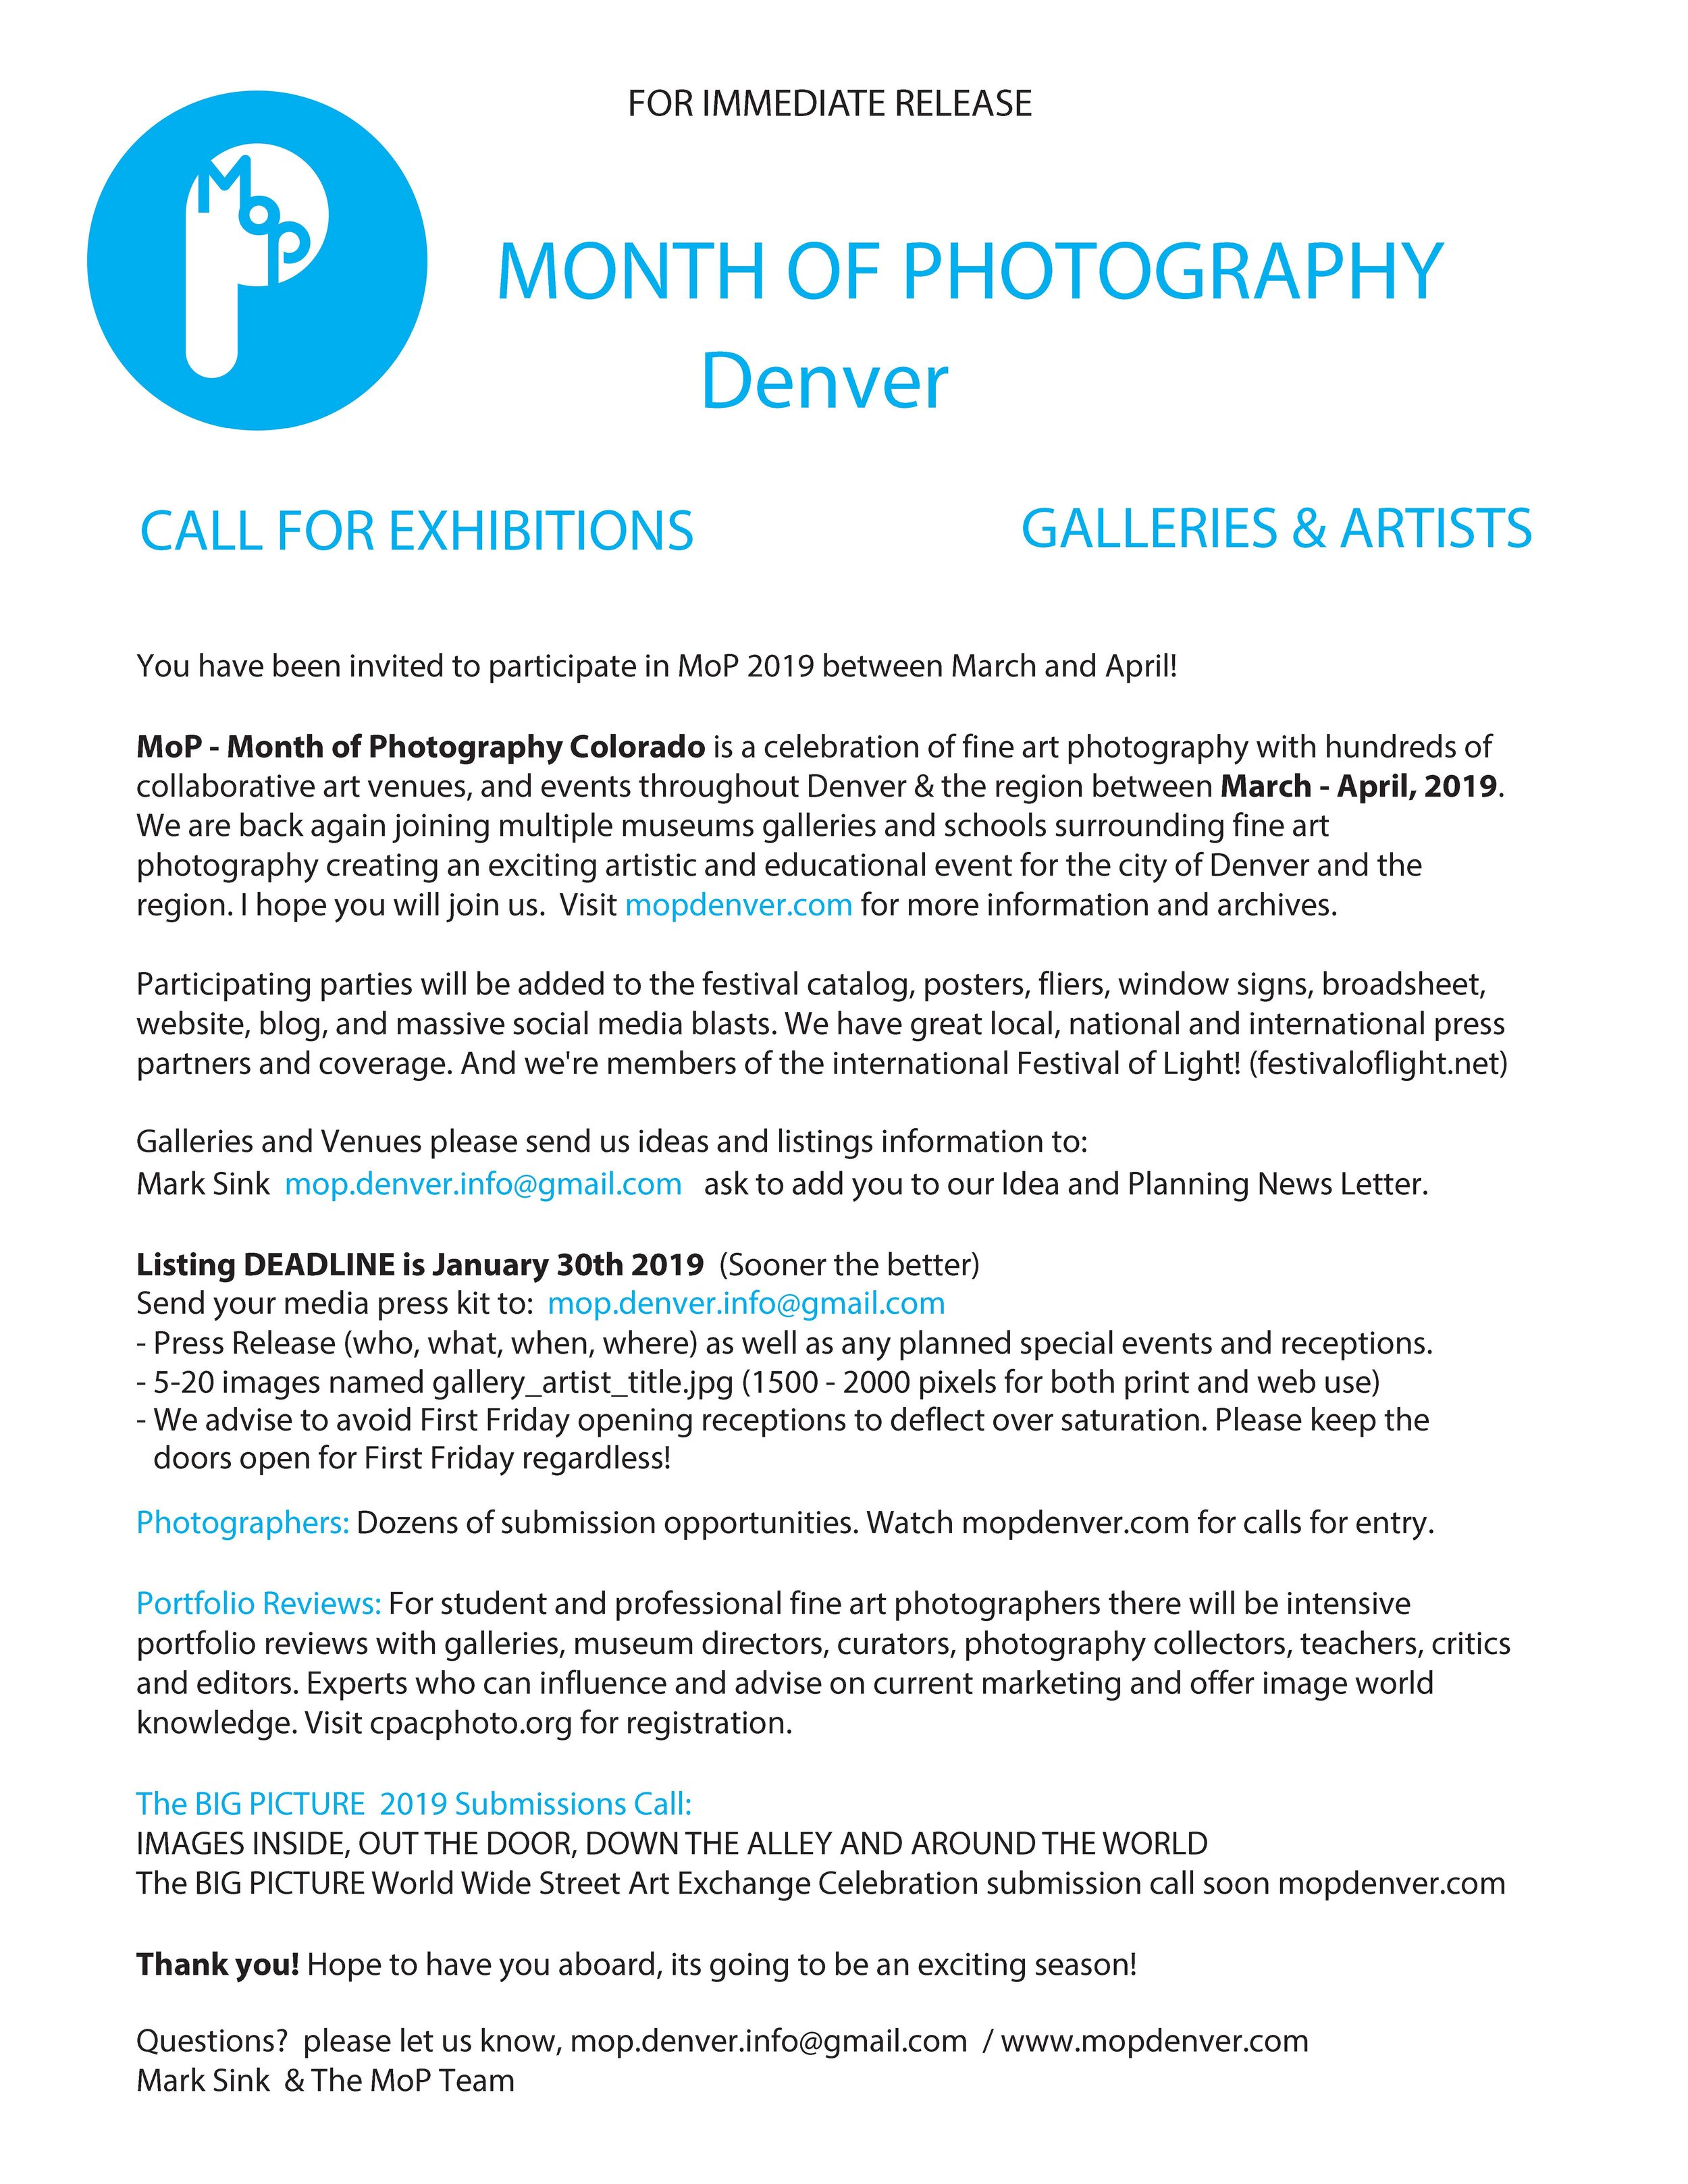 MOP CALL FOR EXHIBITIONS - 01 30 19 — Month of Photography